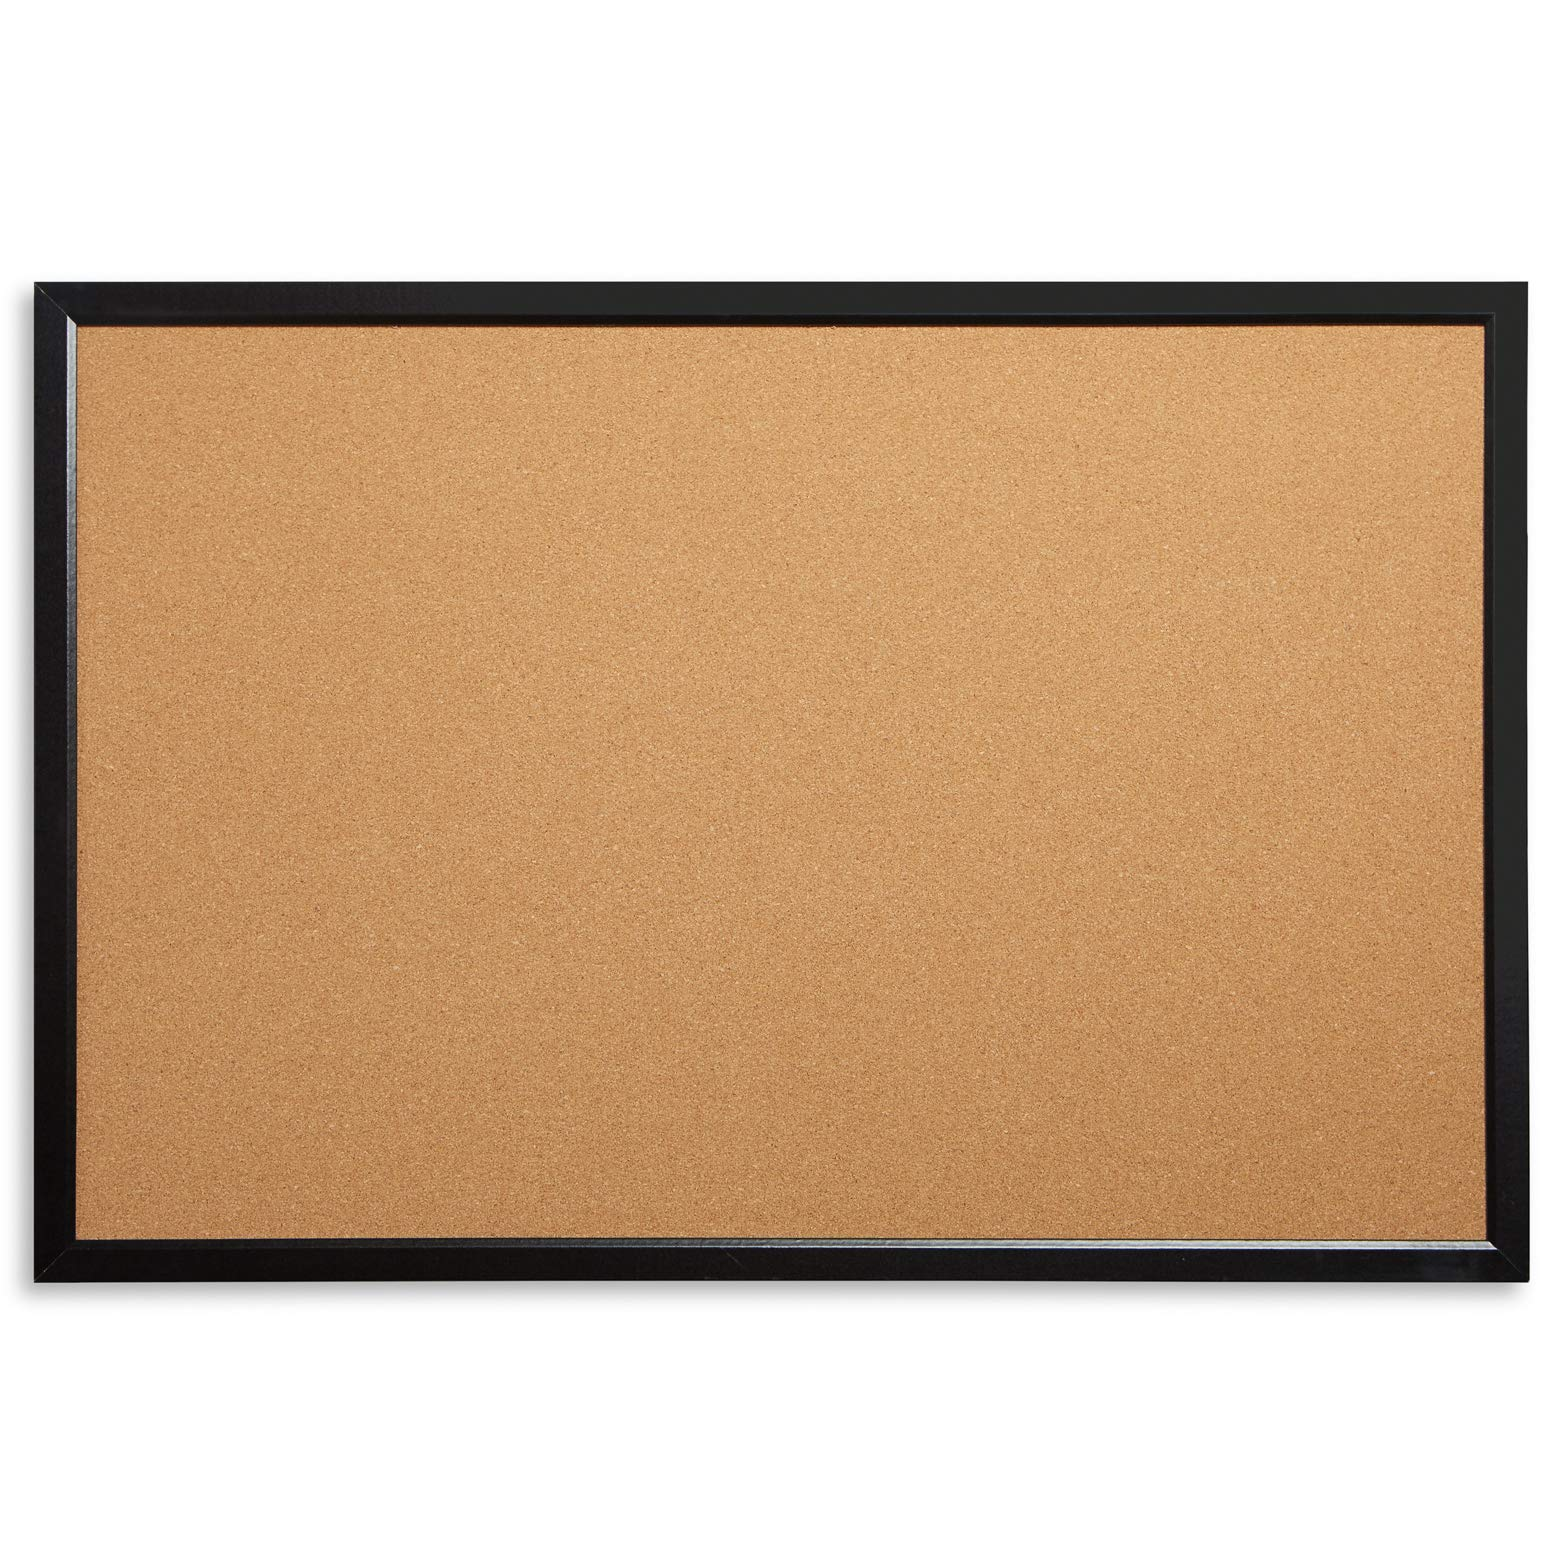 """Blue Summit Supplies 24"""" x 36"""" Corkboard with Black Wood Frame, Bulletin Board with Included Push Pins for Office, Classroom, or Home, Mounting Hardware Included"""